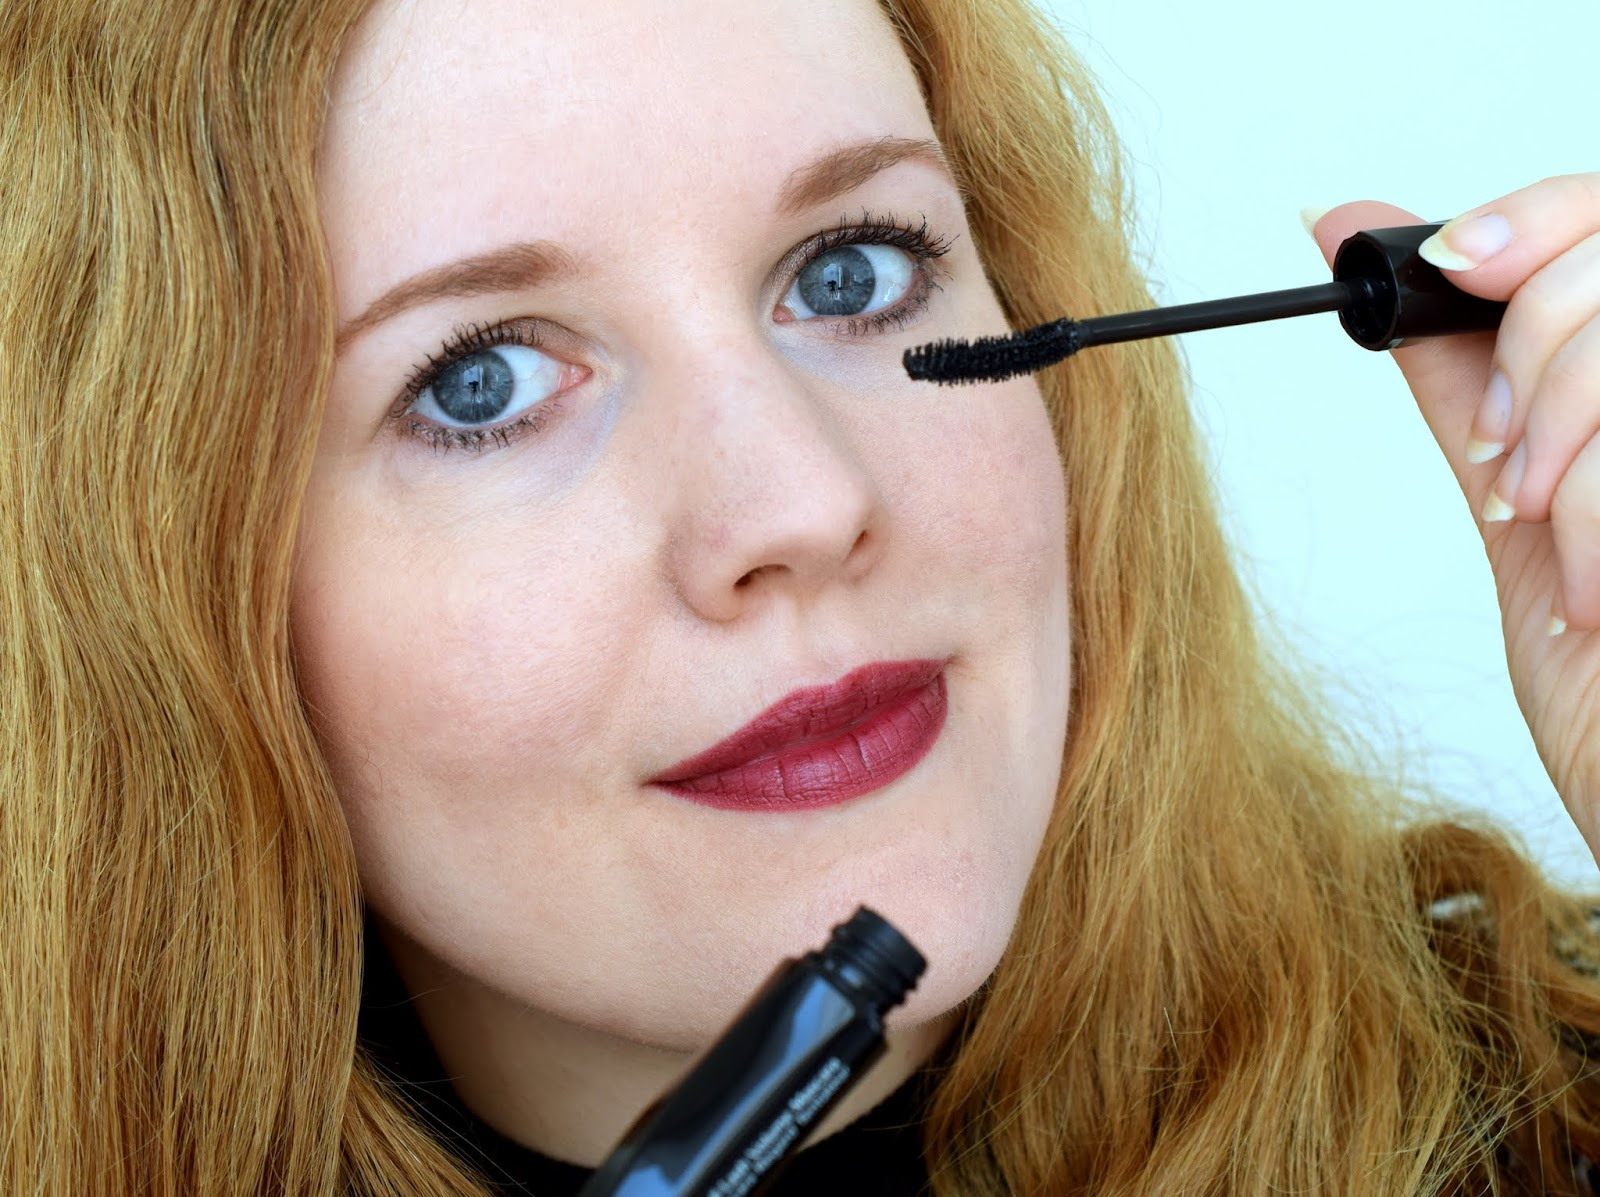 Review Shiseido Full Lash Volume Mascara